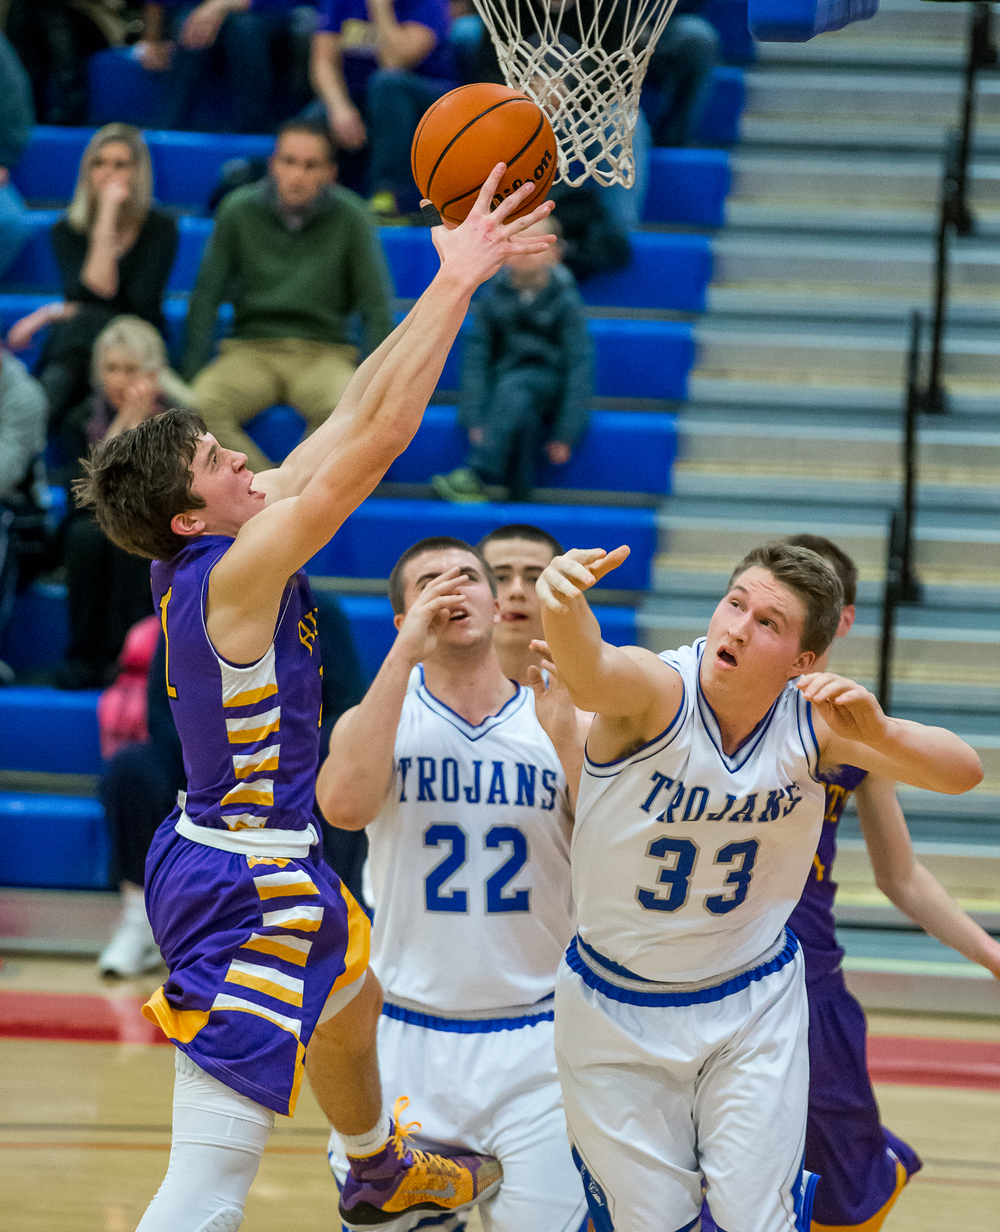 Williamsville's Jack Zibutis (11) goes for a rebound against Auburn's Cooper Eaker (33) underneath the basket in the second half during the Sangamon County Tournament at  Lincoln Land Community College's Cass Gymnasium, Thursday, Jan. 15, 2015, in Springfield, Ill. Justin L. Fowler/The State Journal-Register